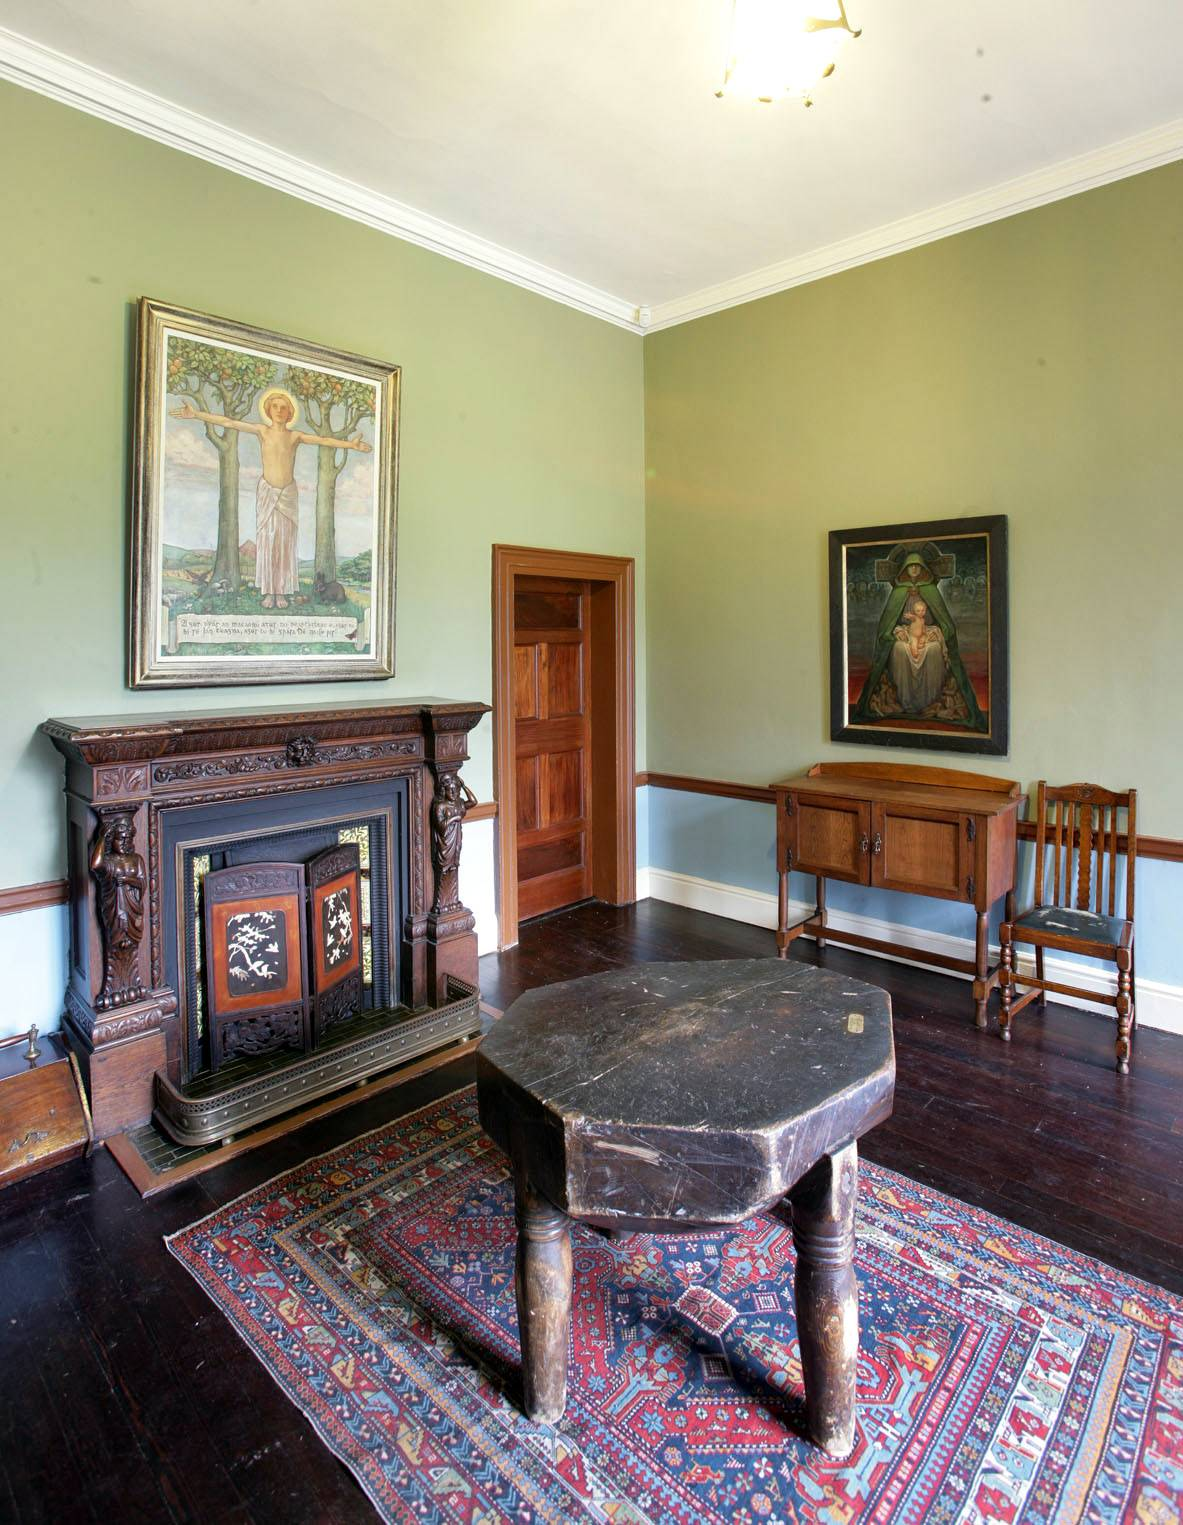 The entrance hall. ©National Monuments Service Dept of Arts, Heritage and the Gaeltacht.